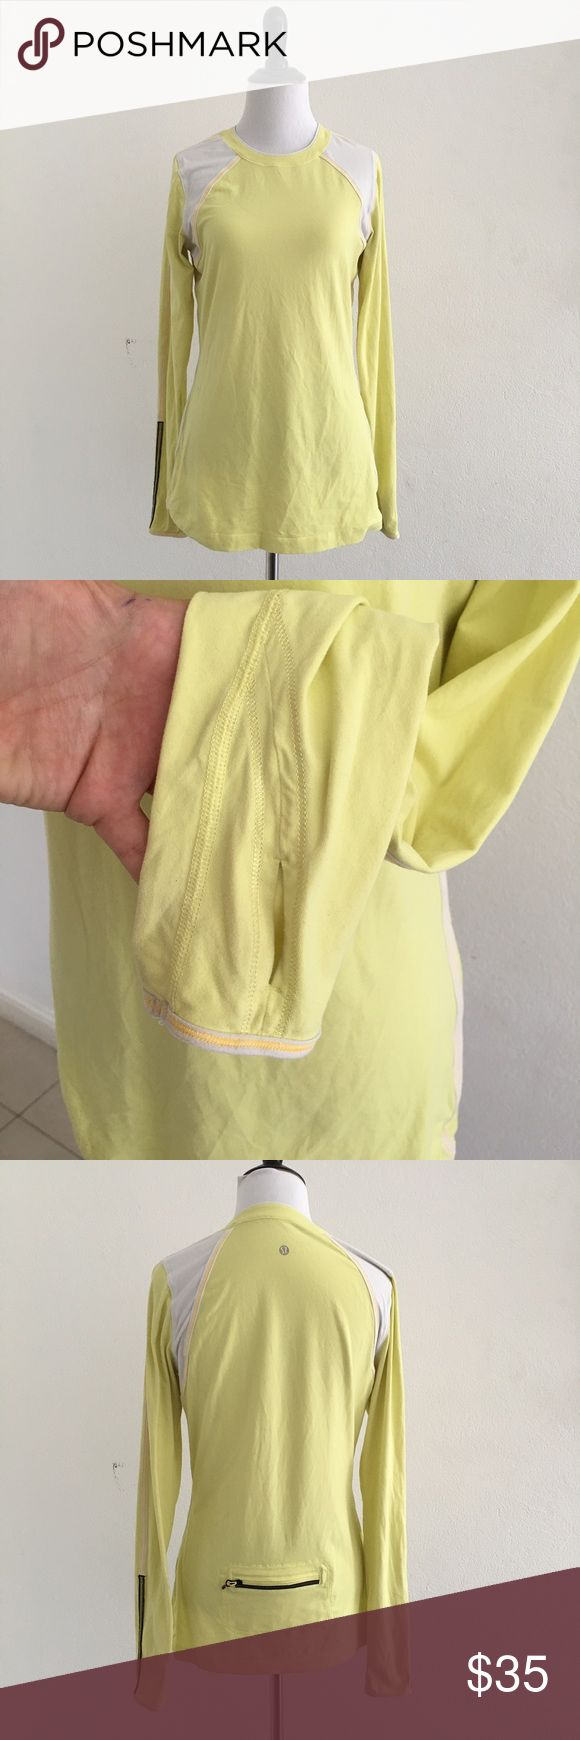 Lululemon Yellow Long Sleeve Top size 8 Preowned Lululemon Yellow Long Sleeve Top size 8. Has thumbholes. Has small light stain in front. Please look at pictures for better reference. Happy shopping! lululemon athletica Tops Tees - Long Sleeve